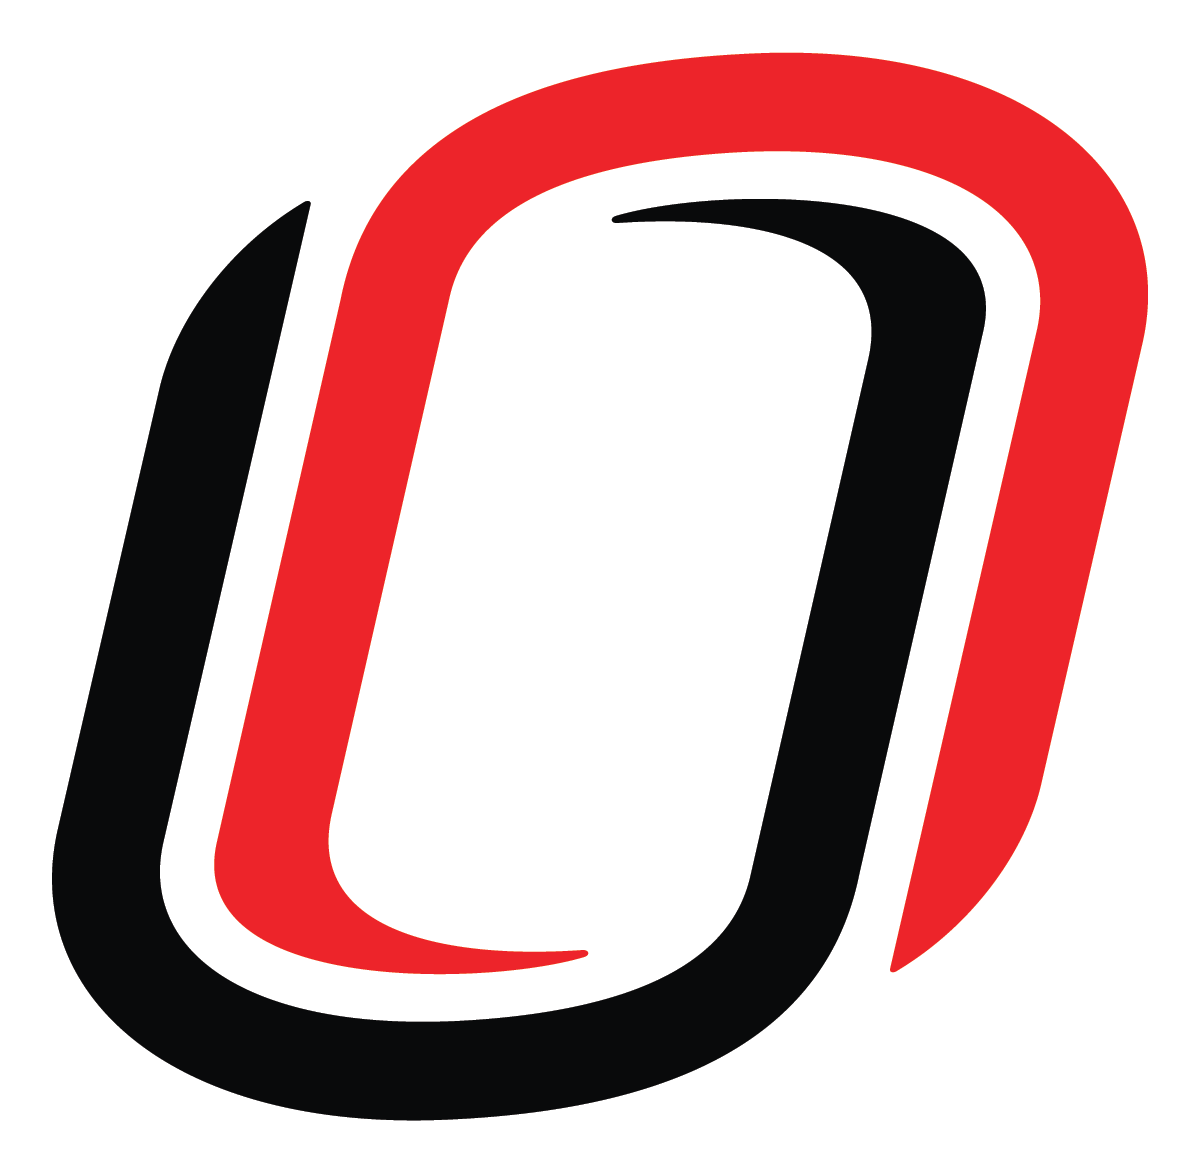 Logo for the University of Nebraska at Omaha